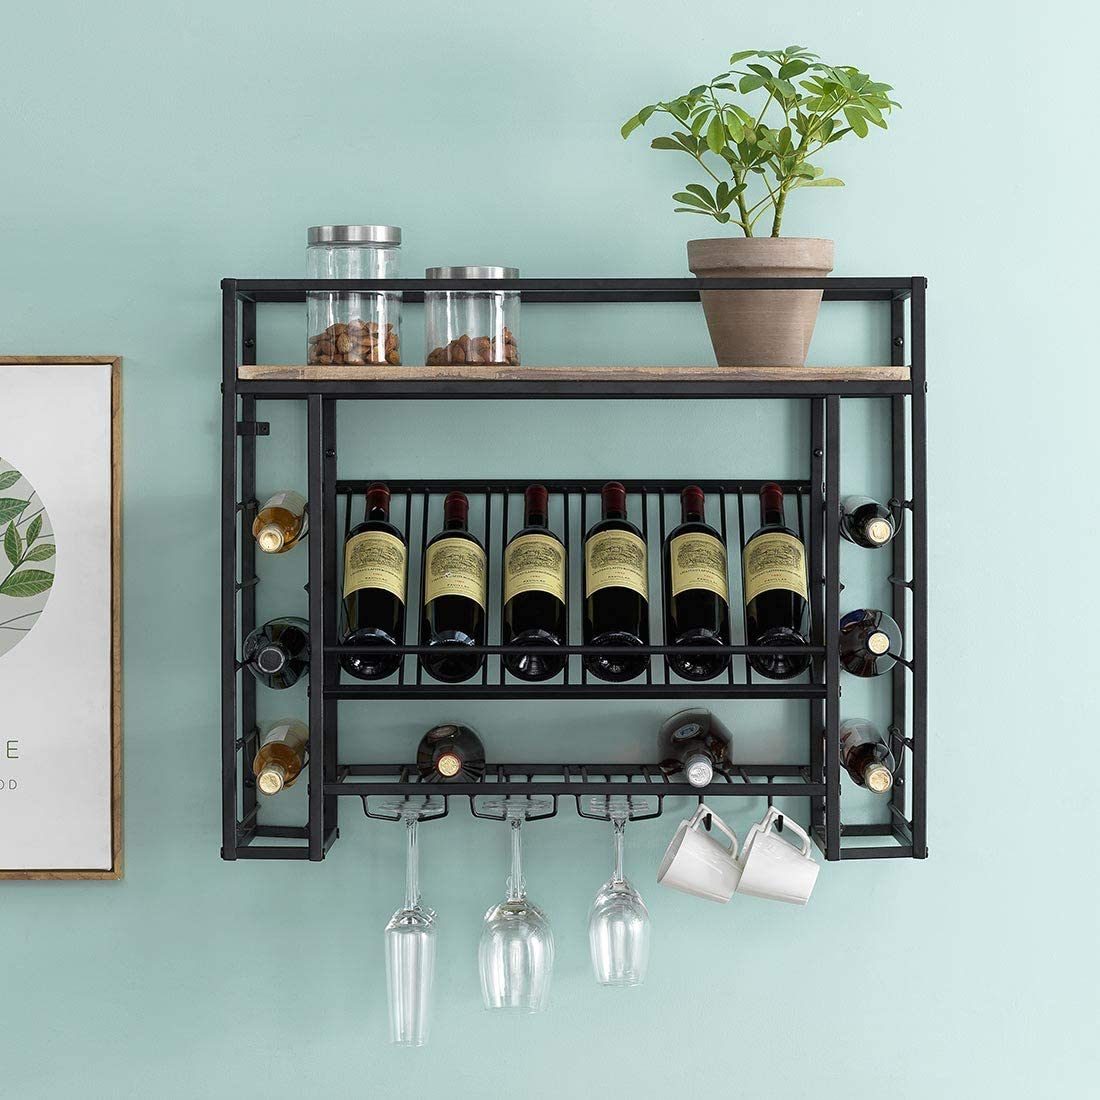 "O&K FURNITURE 31"" Industrial Wine Racks Wall Mounted with Stem Glass and Mug Holder, Hanging Wine Racks for Wine Bottles, Wine Display Storage Wall Rack, Brown"